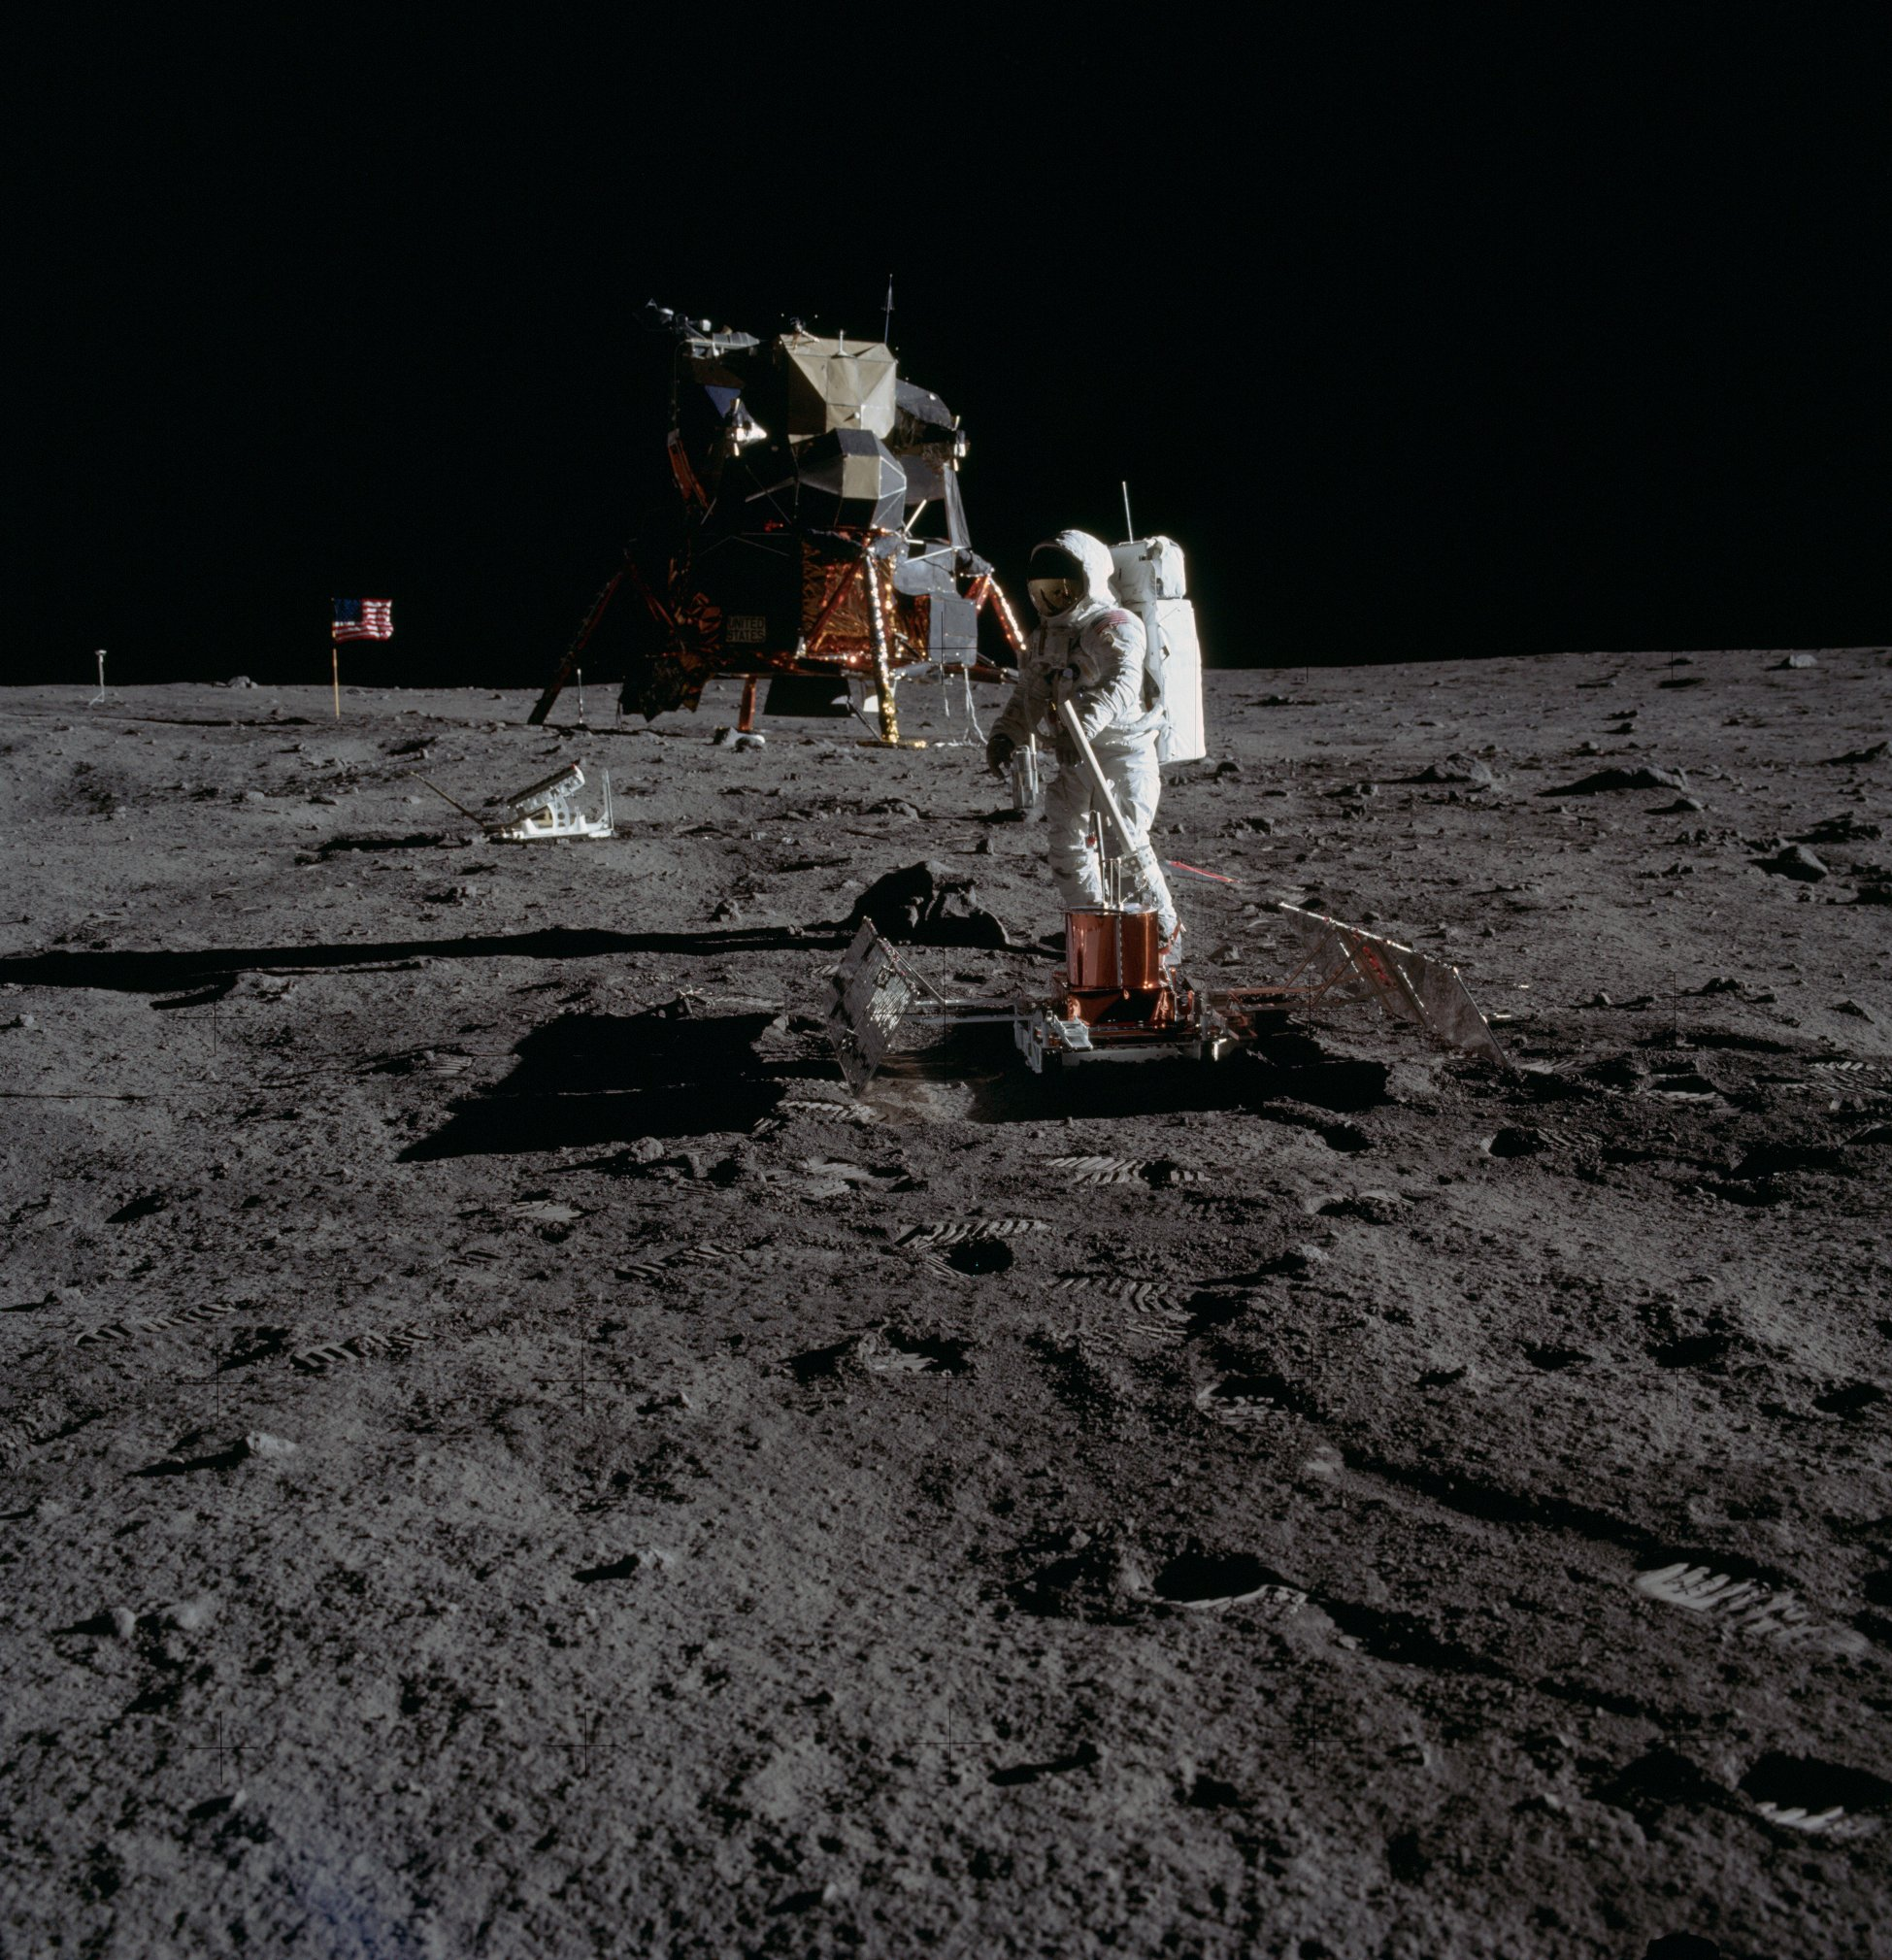 Astronaut Buzz Aldrin, levels the Passive Seismic Experiments Package PSEP. Image taken at Tranquility Base during the Apollo 11 Mission. Credit: NASA